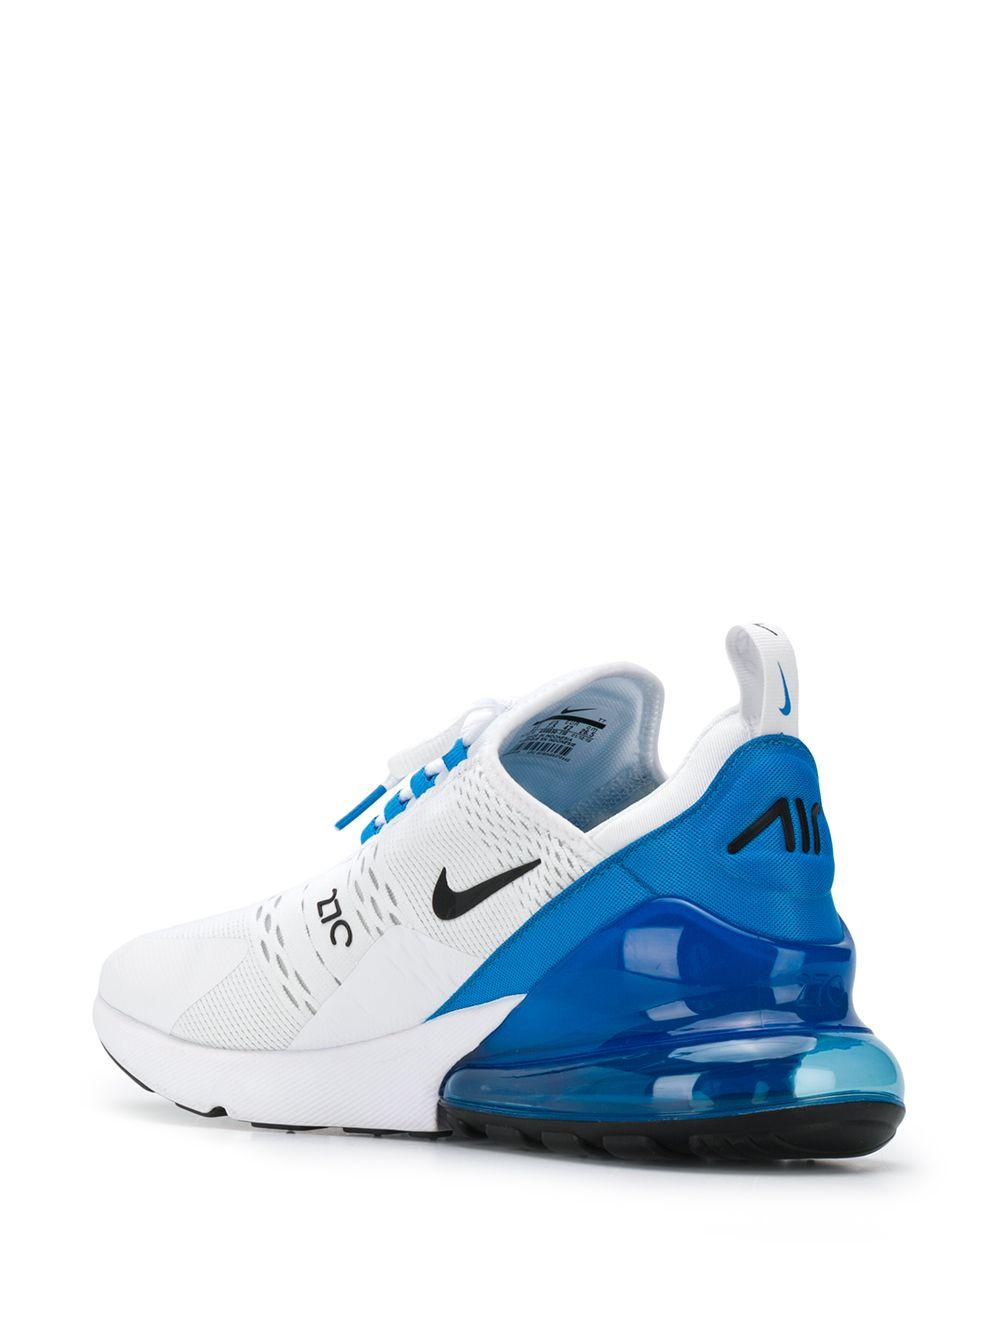 new product 996d0 fe472 Nike - White Air Max 270 Sneakers for Men - Lyst. View fullscreen